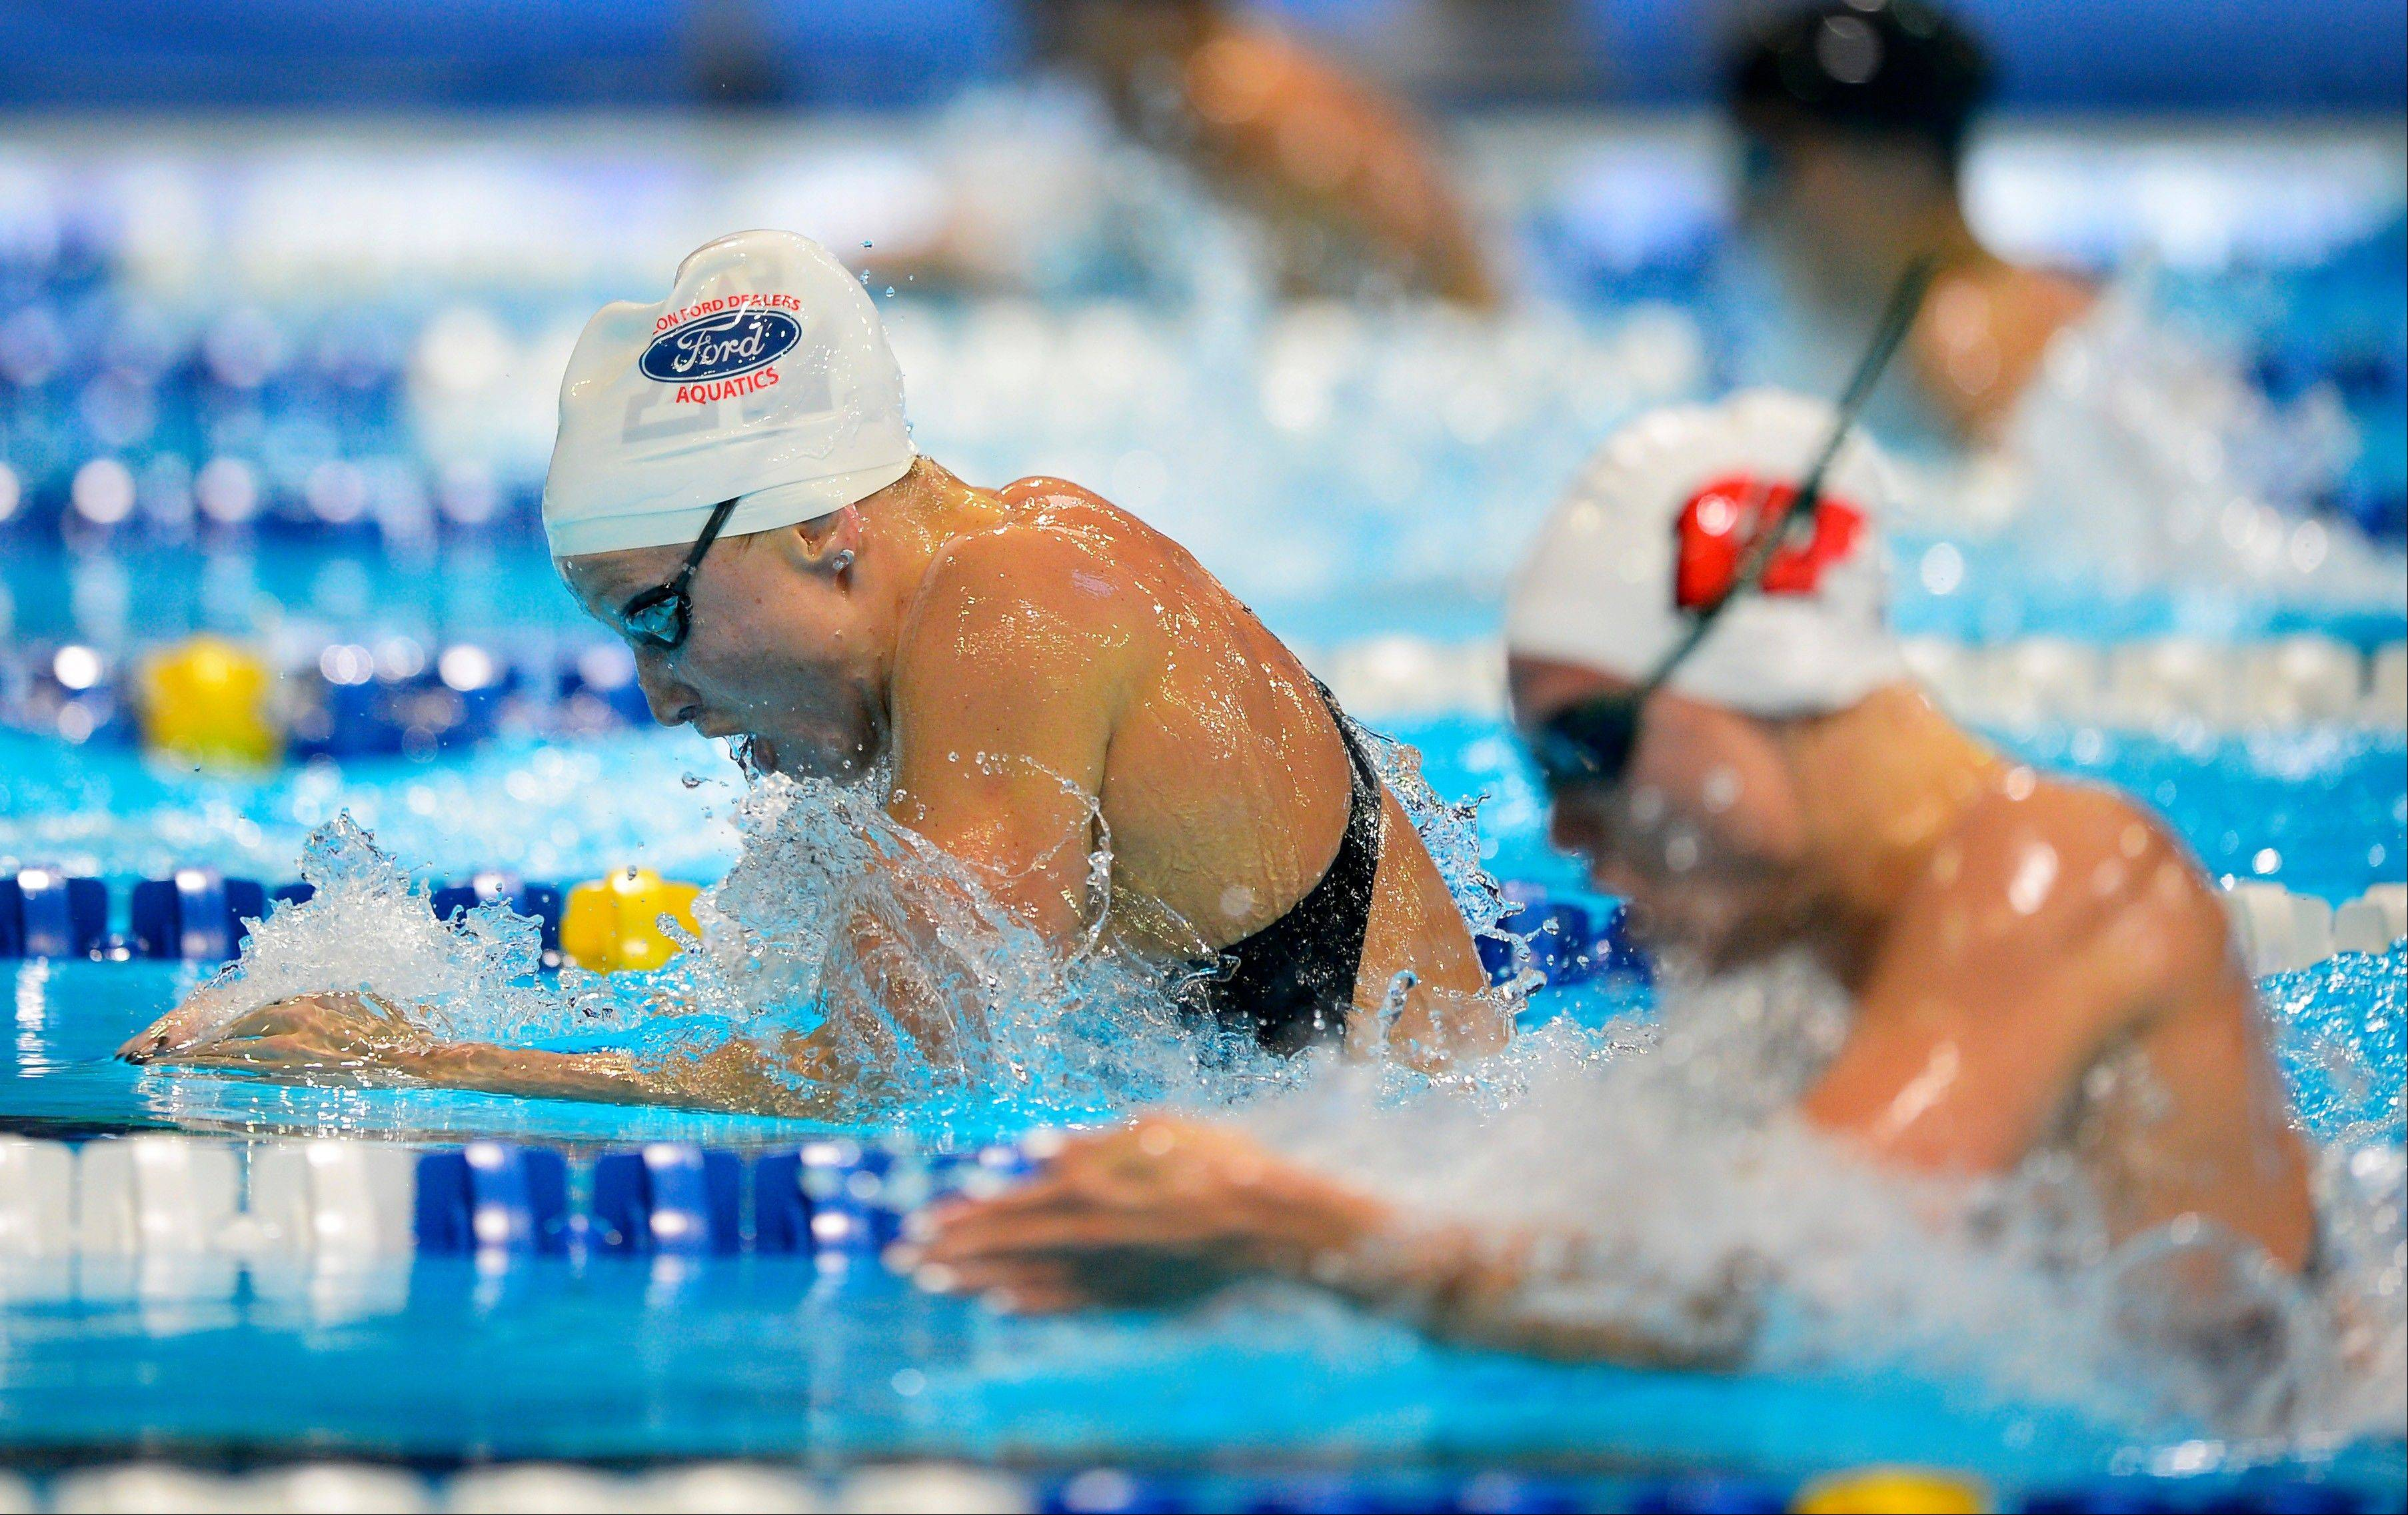 Annie Chandler, left, swims in the women's 100-meter breaststroke semifinals at the U.S. Olympic swimming trials Tuesday. At right is Stevenson High School product Ashley Wanland, who advanced to Wednesday's finals.